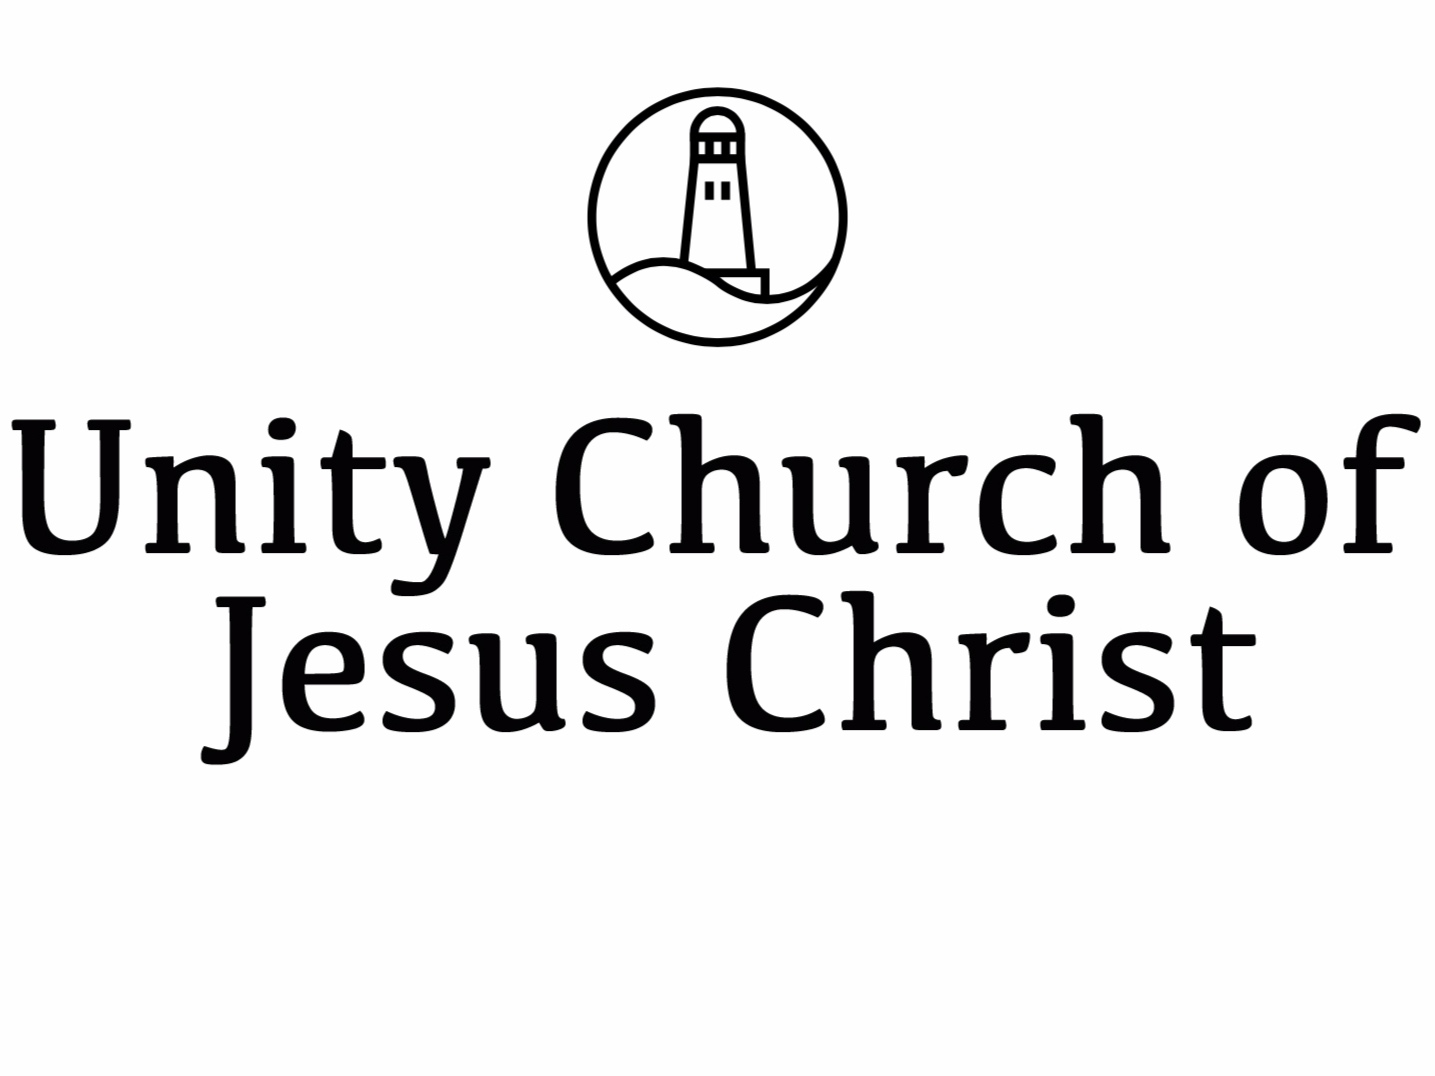 Unity Church of Jesus Christ